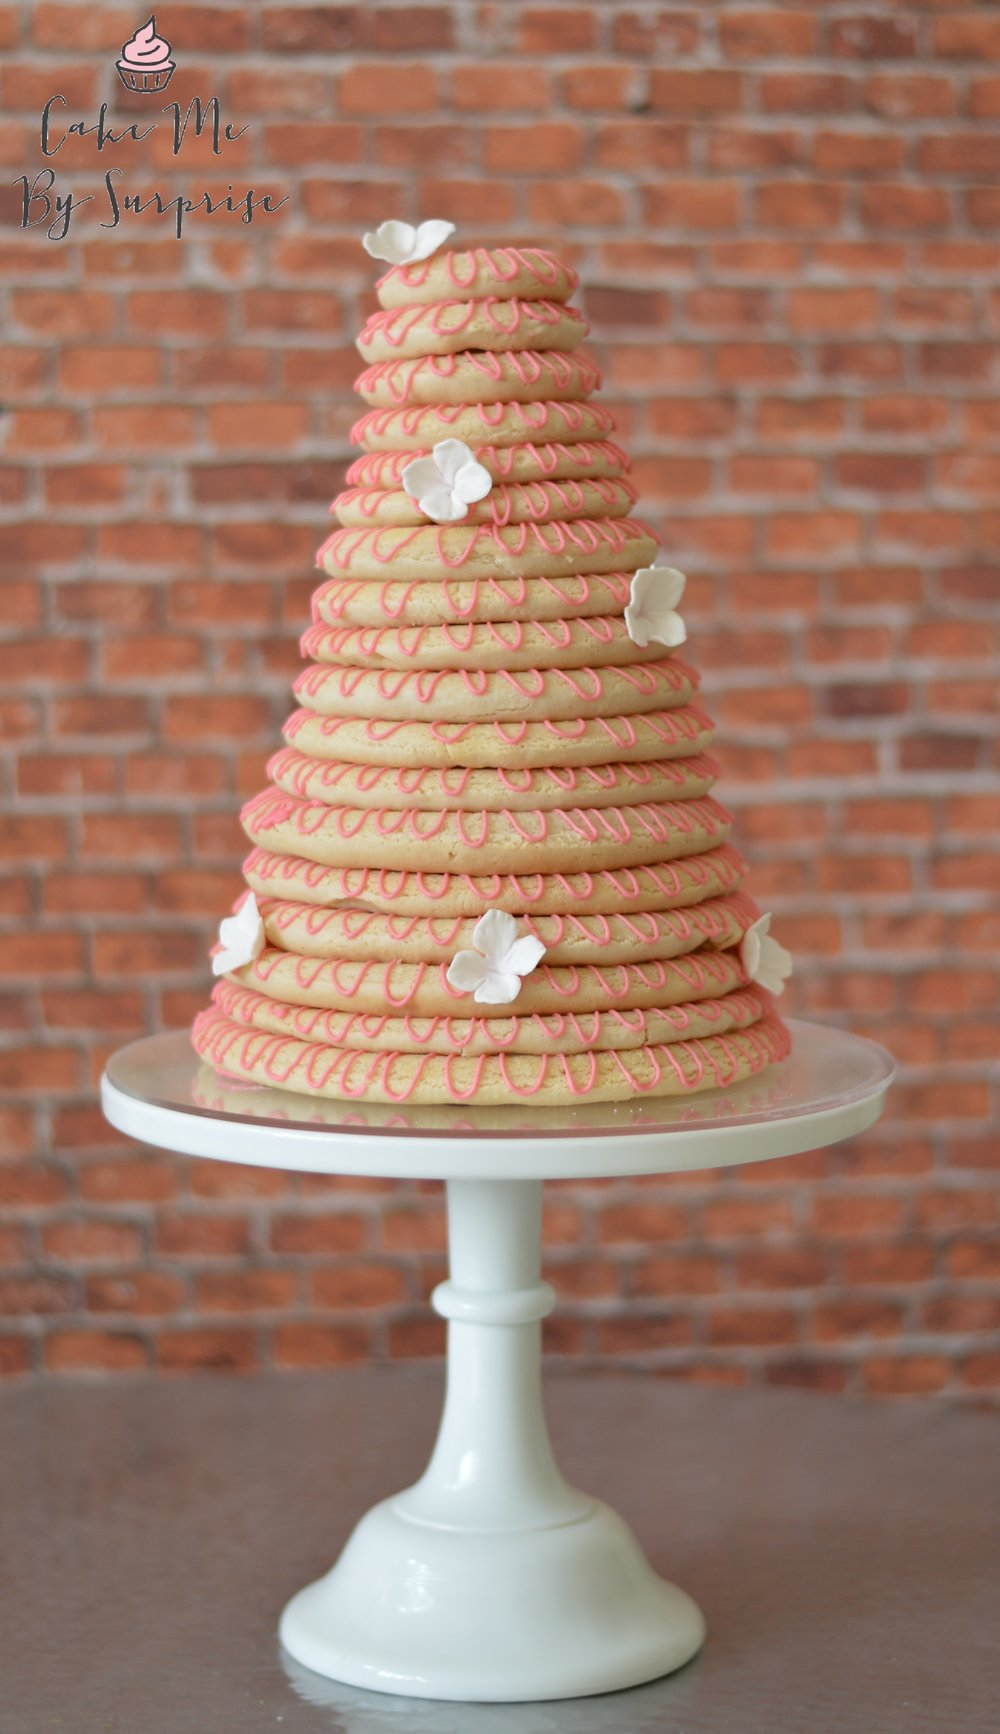 Kransekake A tower of sweet almond biscuit traditionally created for Scandinavian weddings.   £200 minimum order Priced by height ( Please contact us for further details)